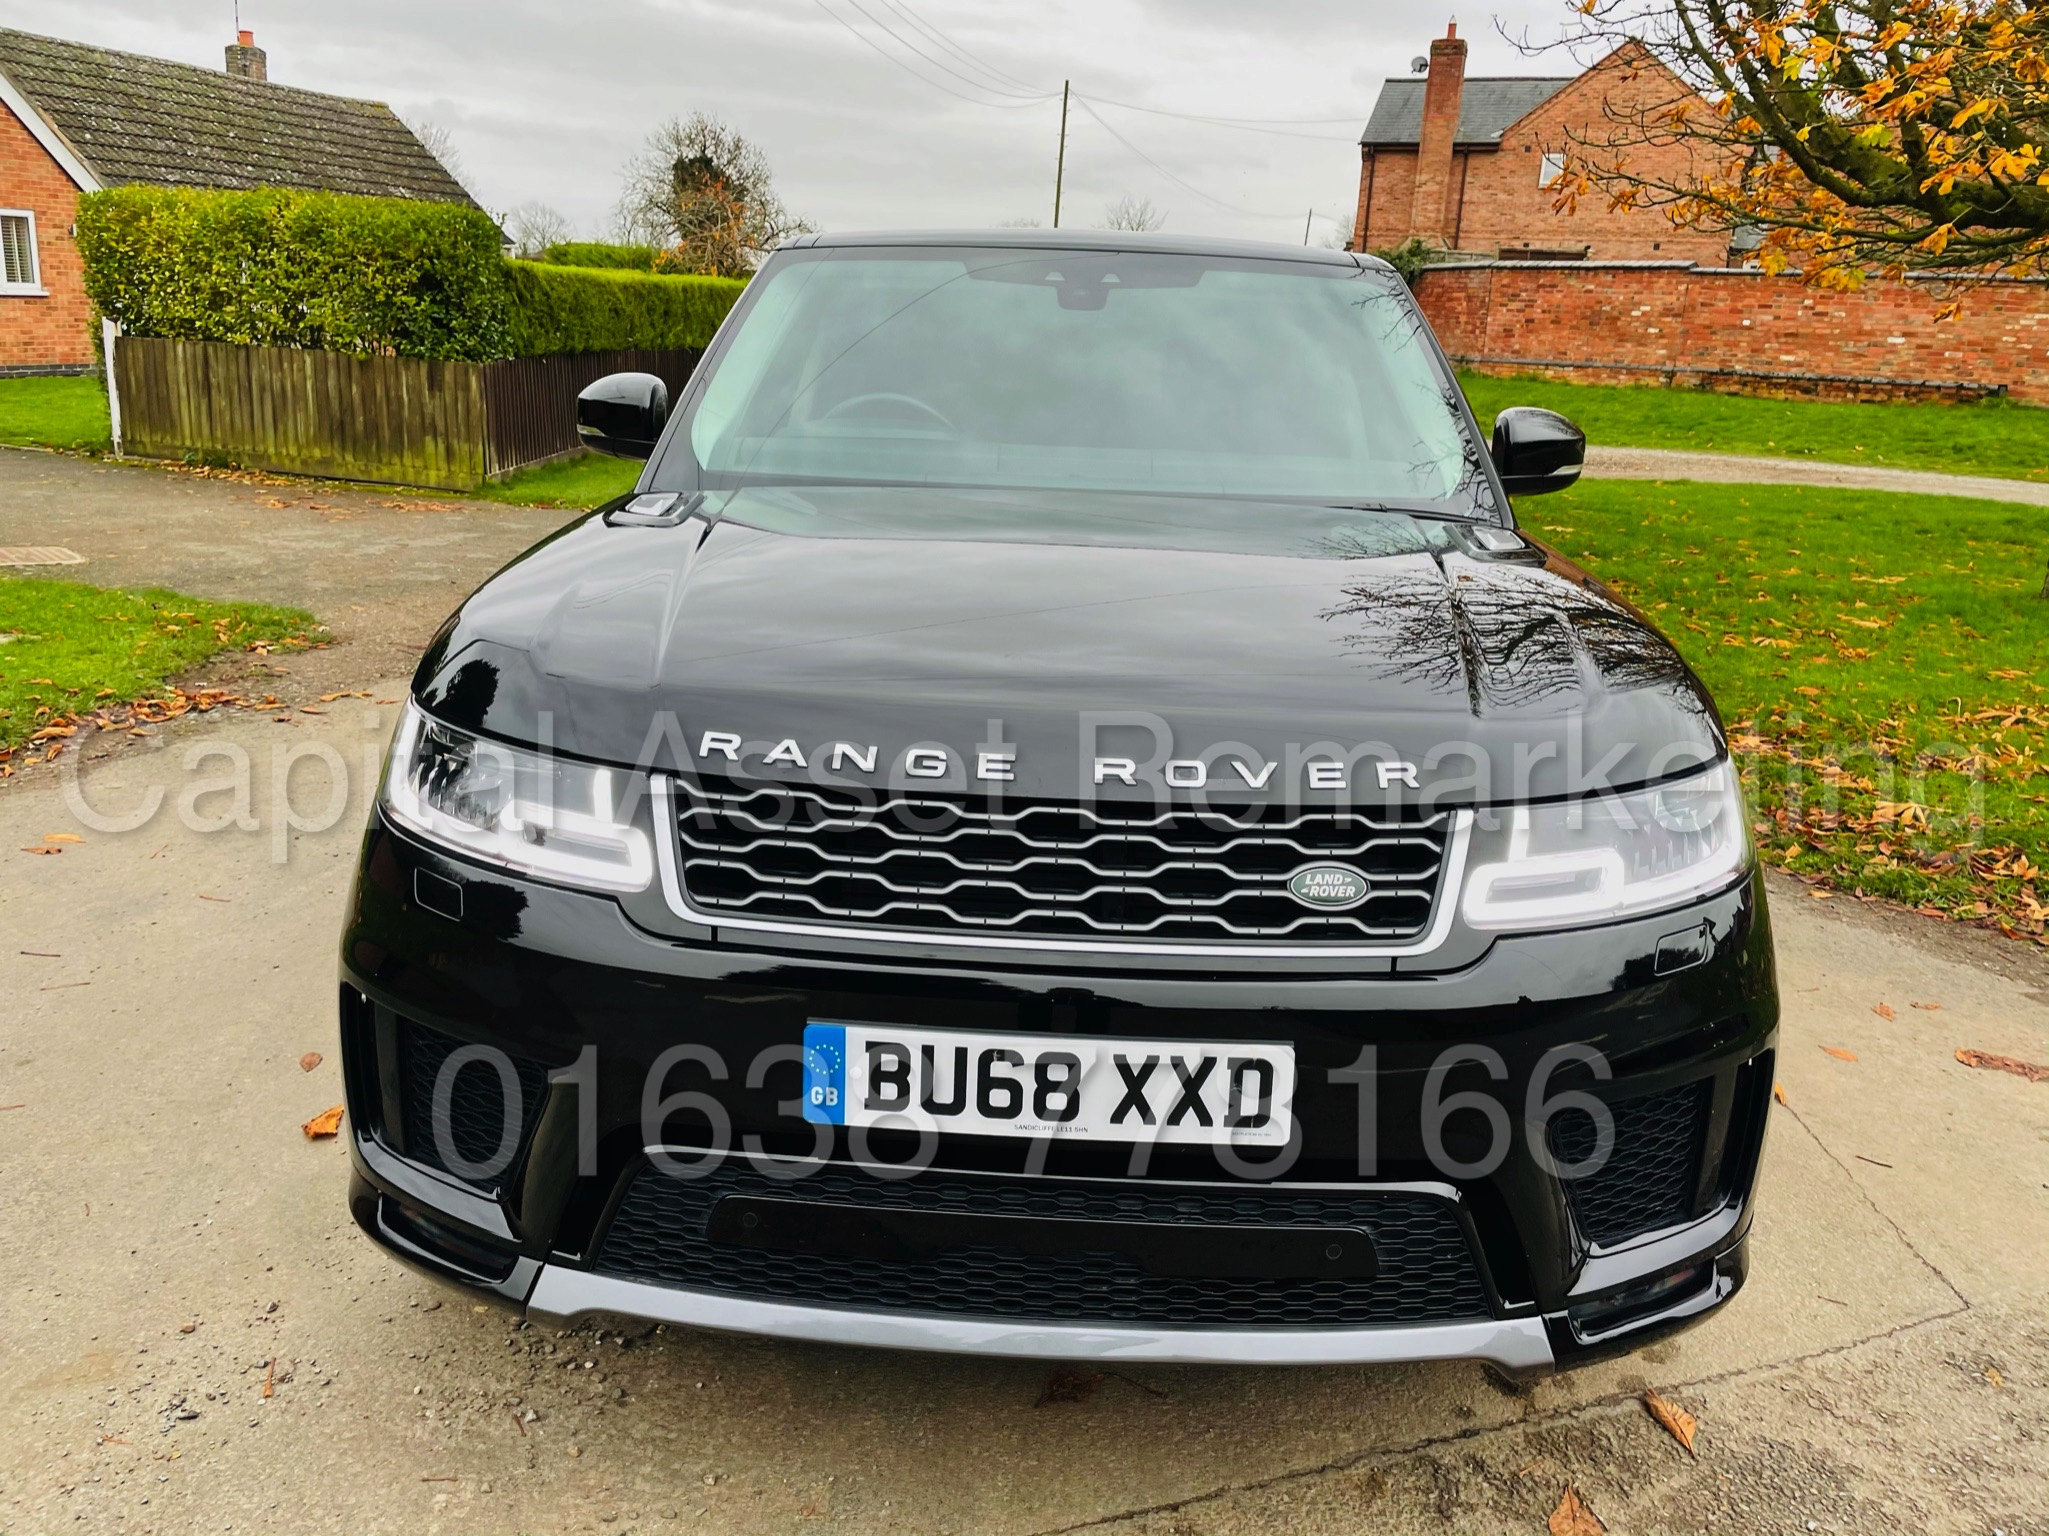 RANGE ROVER SPORT *HSE EDITION* SUV (2019 MODEL) '3.0 SDV6 - 306 BHP - 8 SPEED AUTO' *FULLY LOADED* - Image 4 of 56